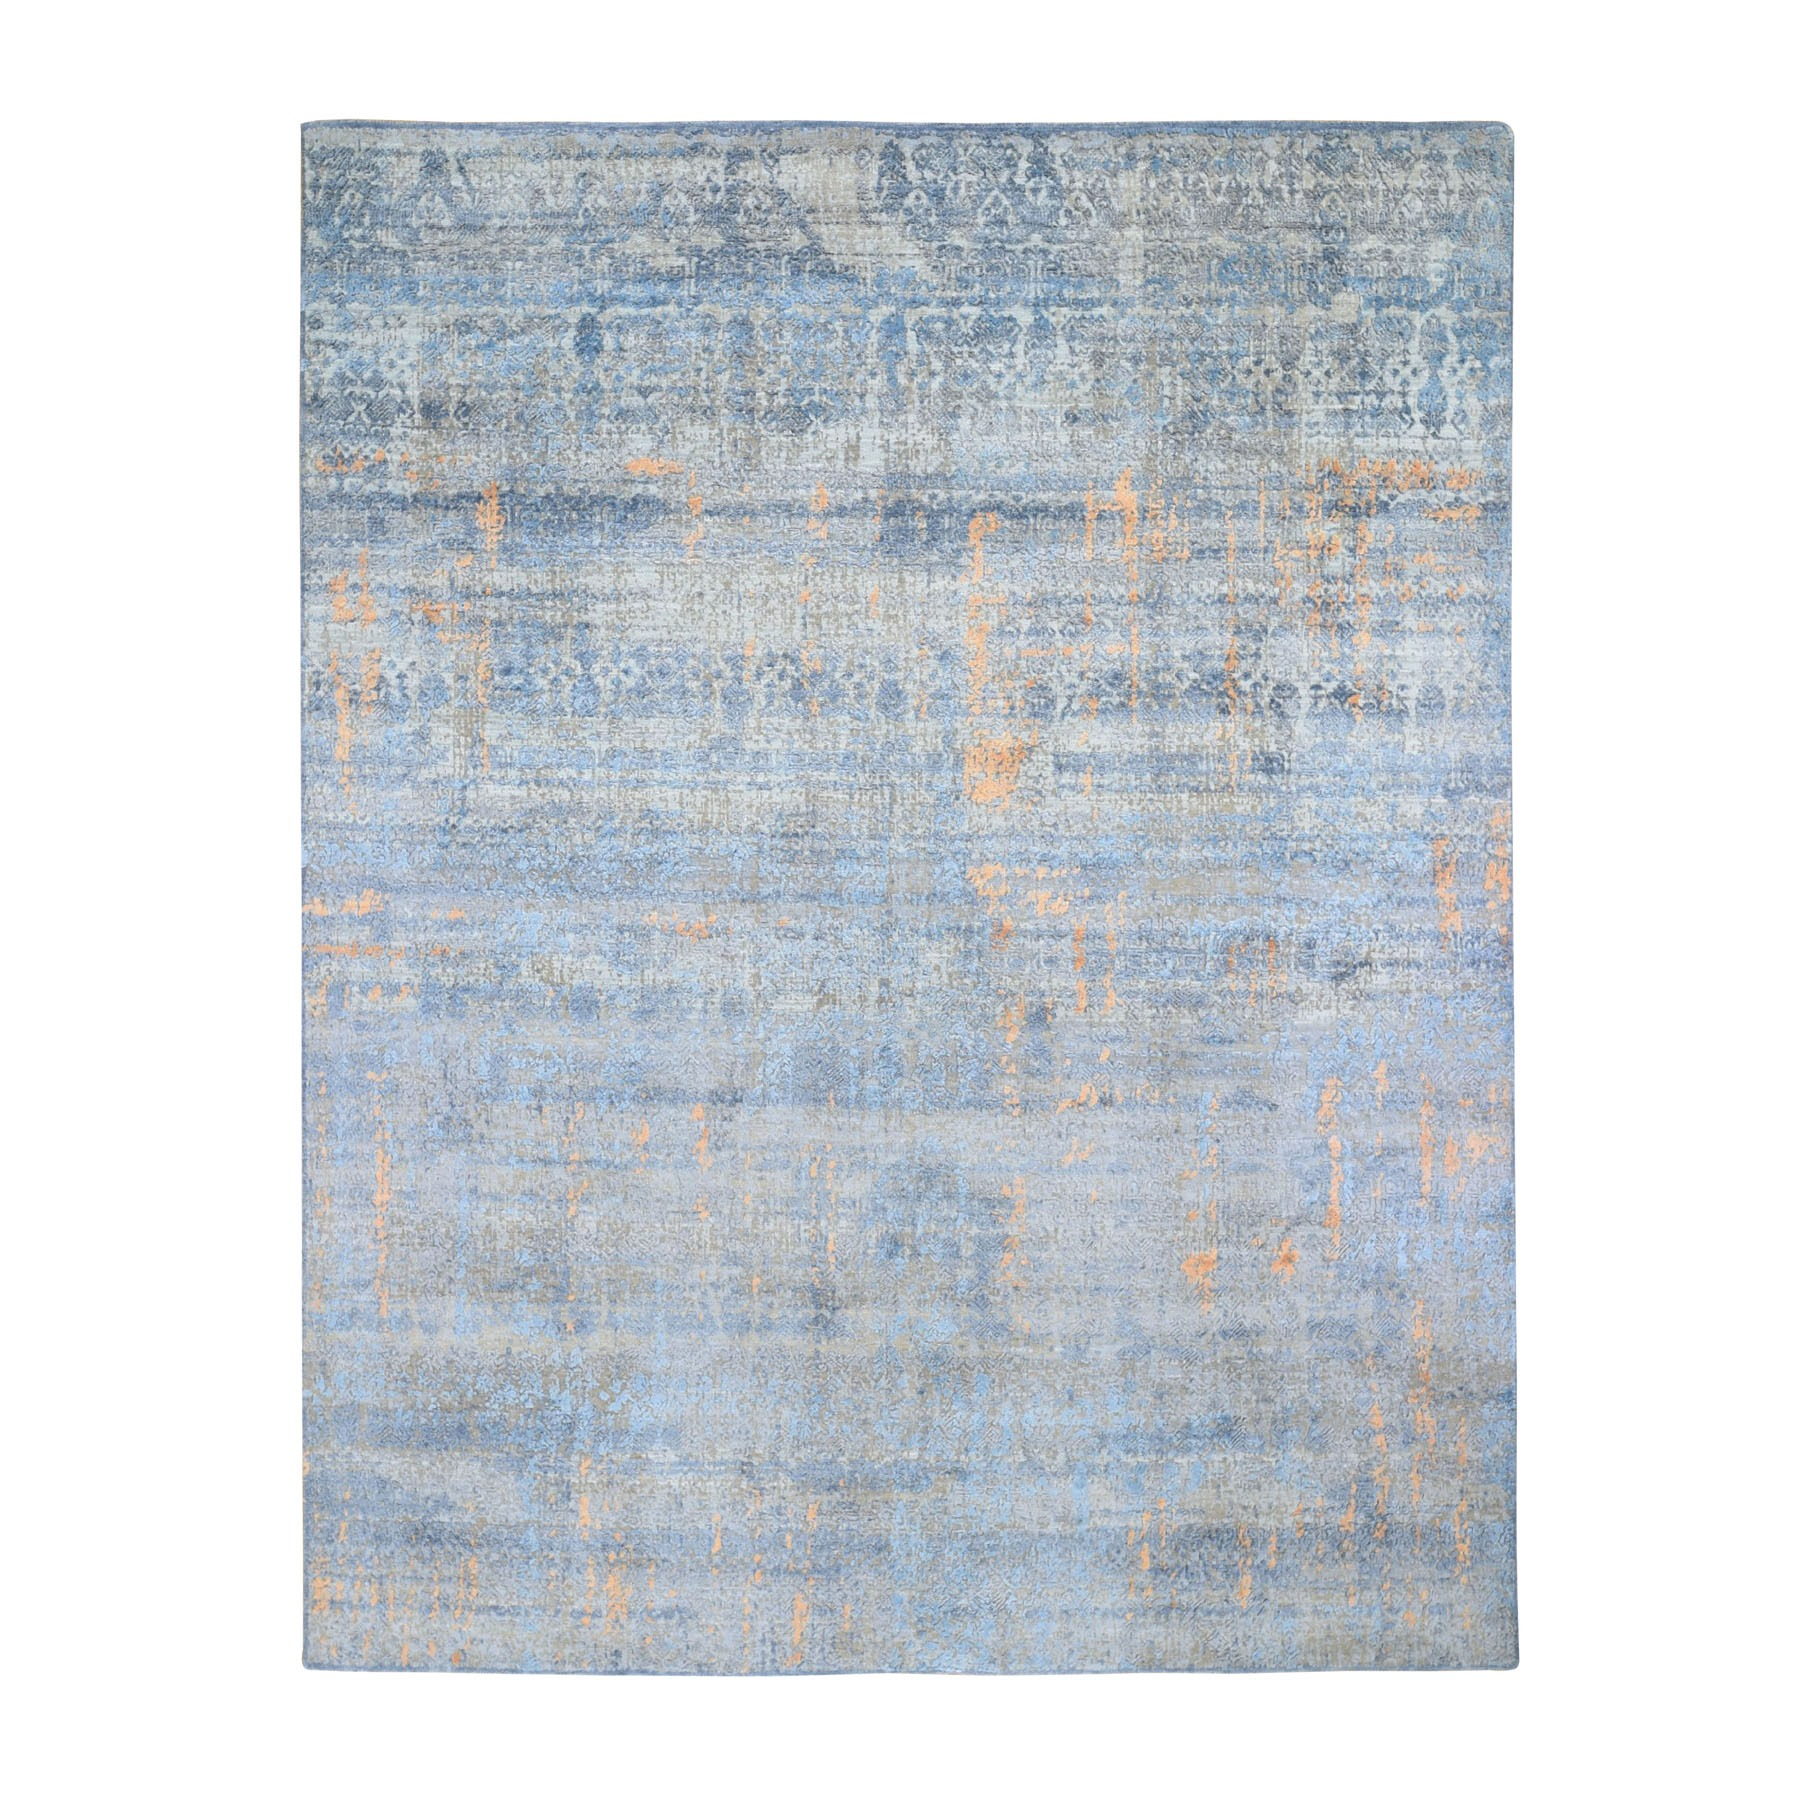 8'X10'  Light Blue Silk With Textured Wool Abstract Dripping Design Hand Knotted Oriental Rug moad9076